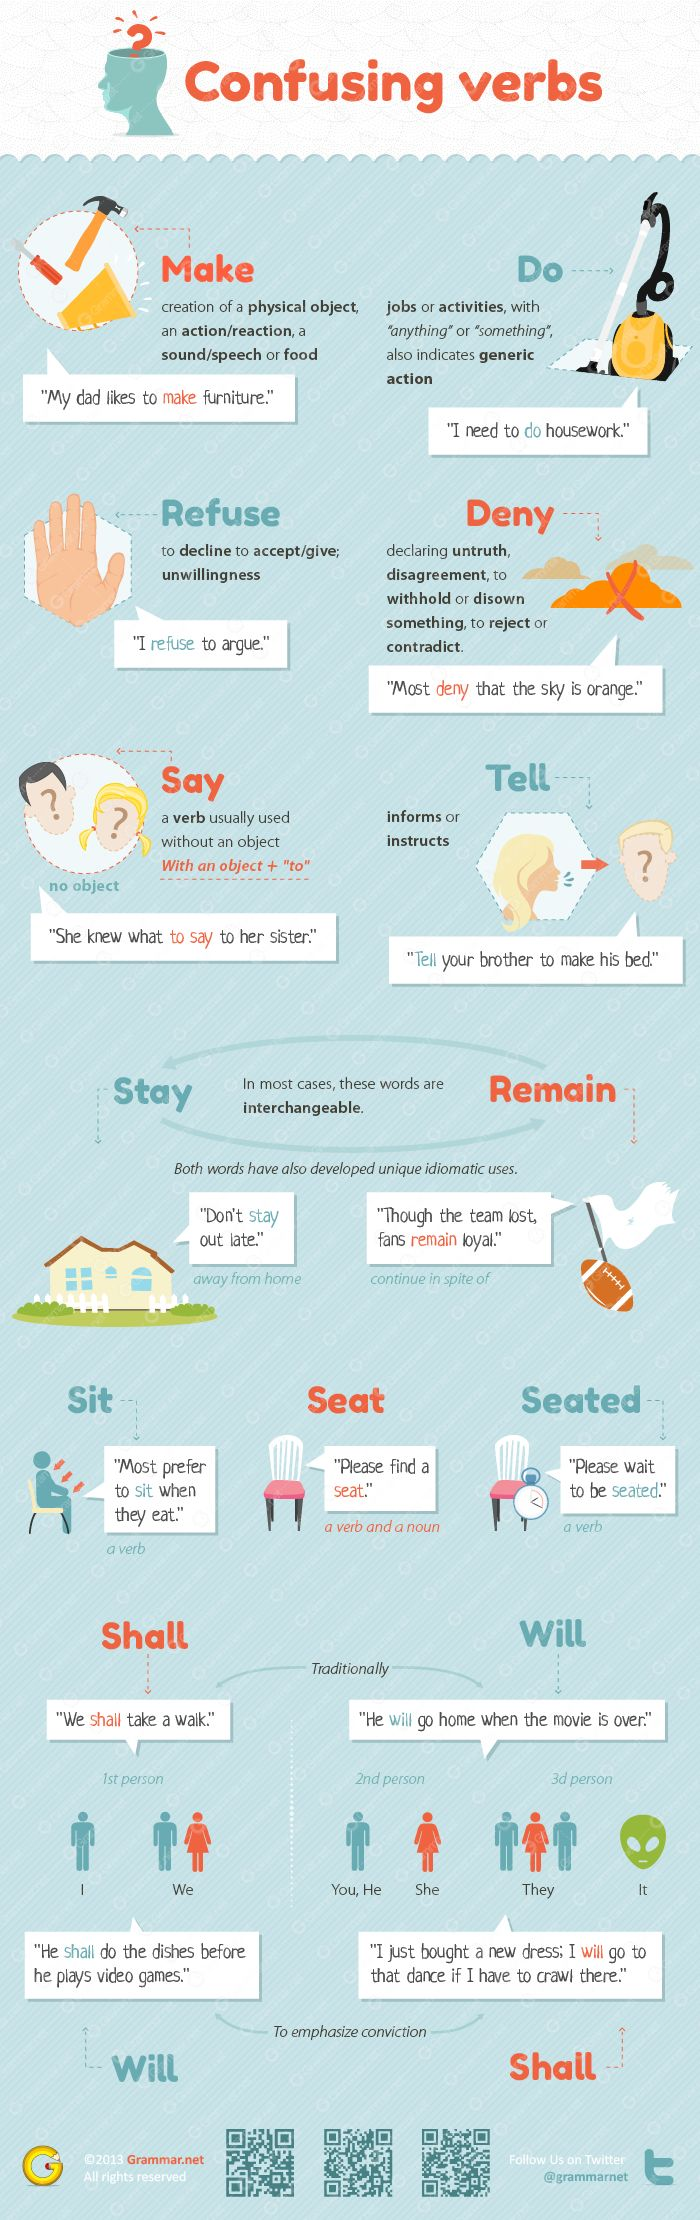 """15 Confusing Verbs in English"" (#INFOGRAPHIC) #ESL #ELL #ELD"